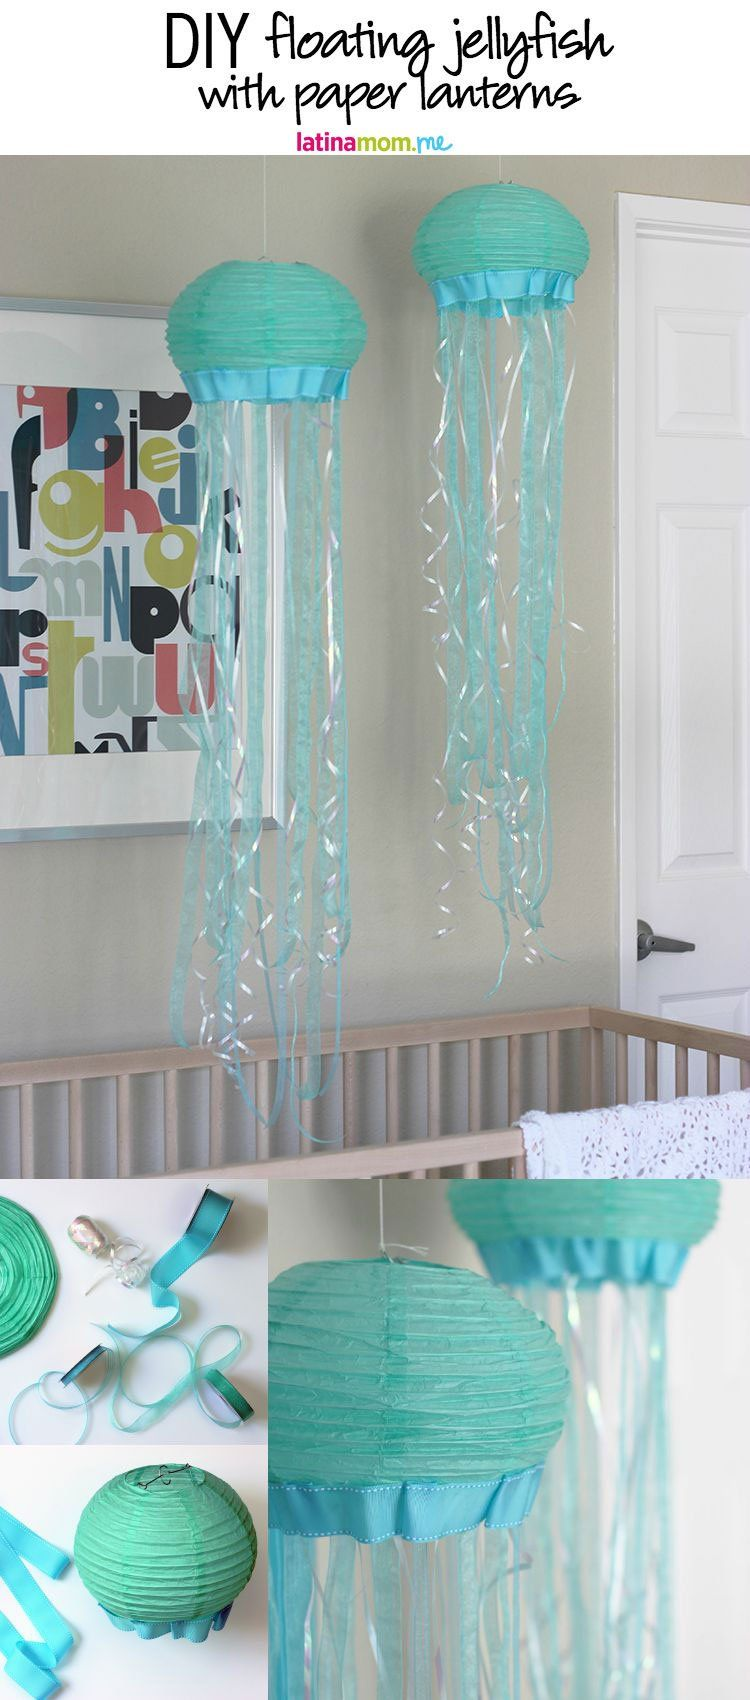 Diy Paper Lantern Jellyfish  Latino Home Decor And Diy